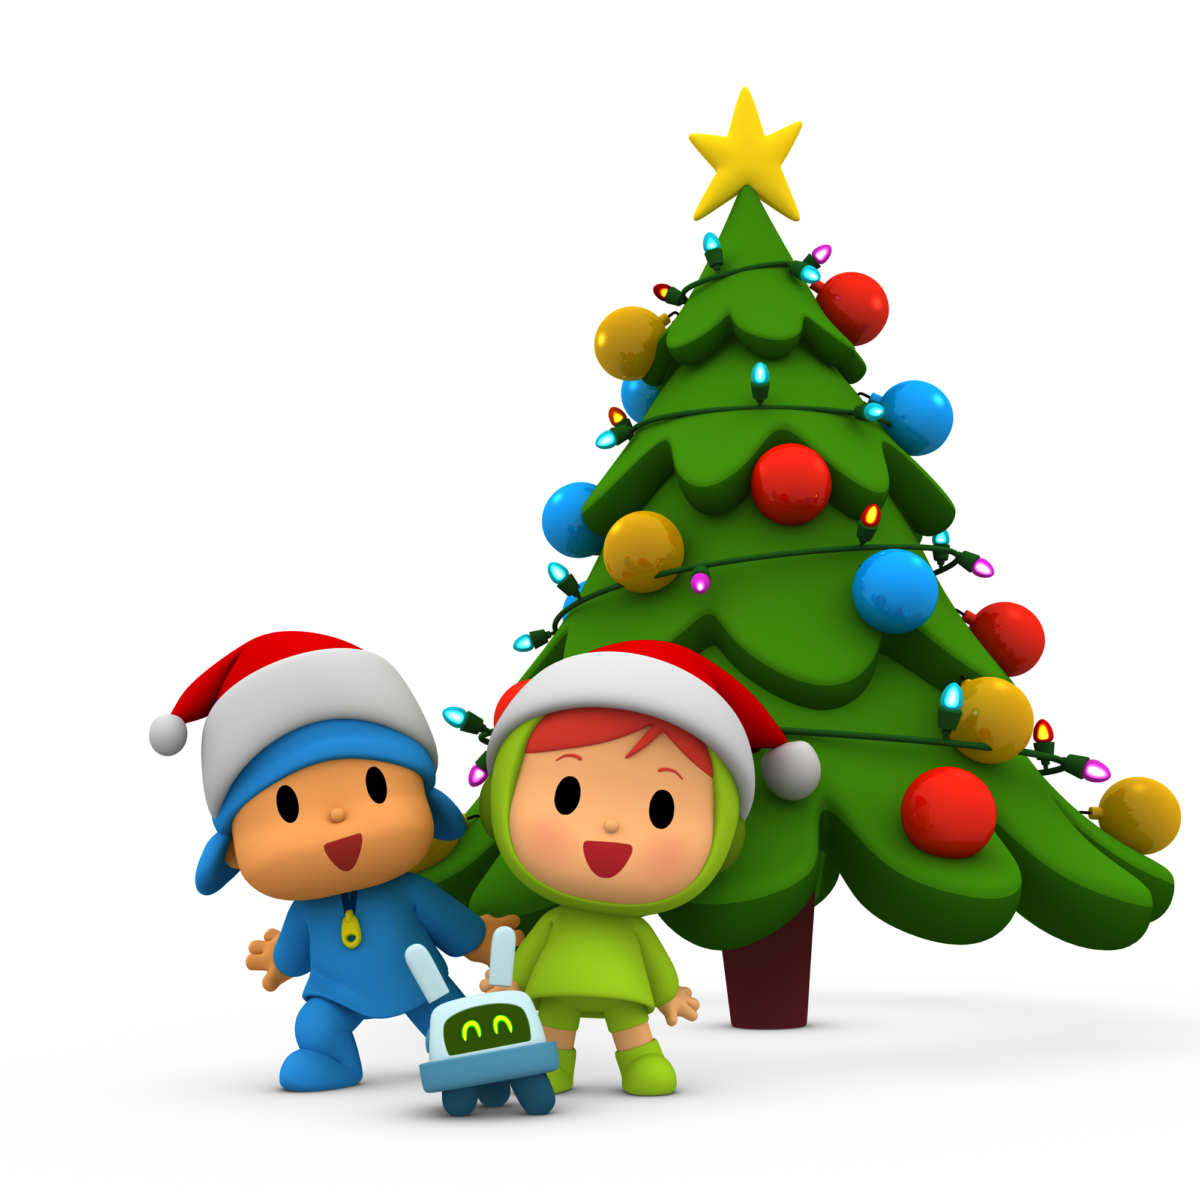 Pocoyo and Nina celebrated the beginning of Christmas in H2O!